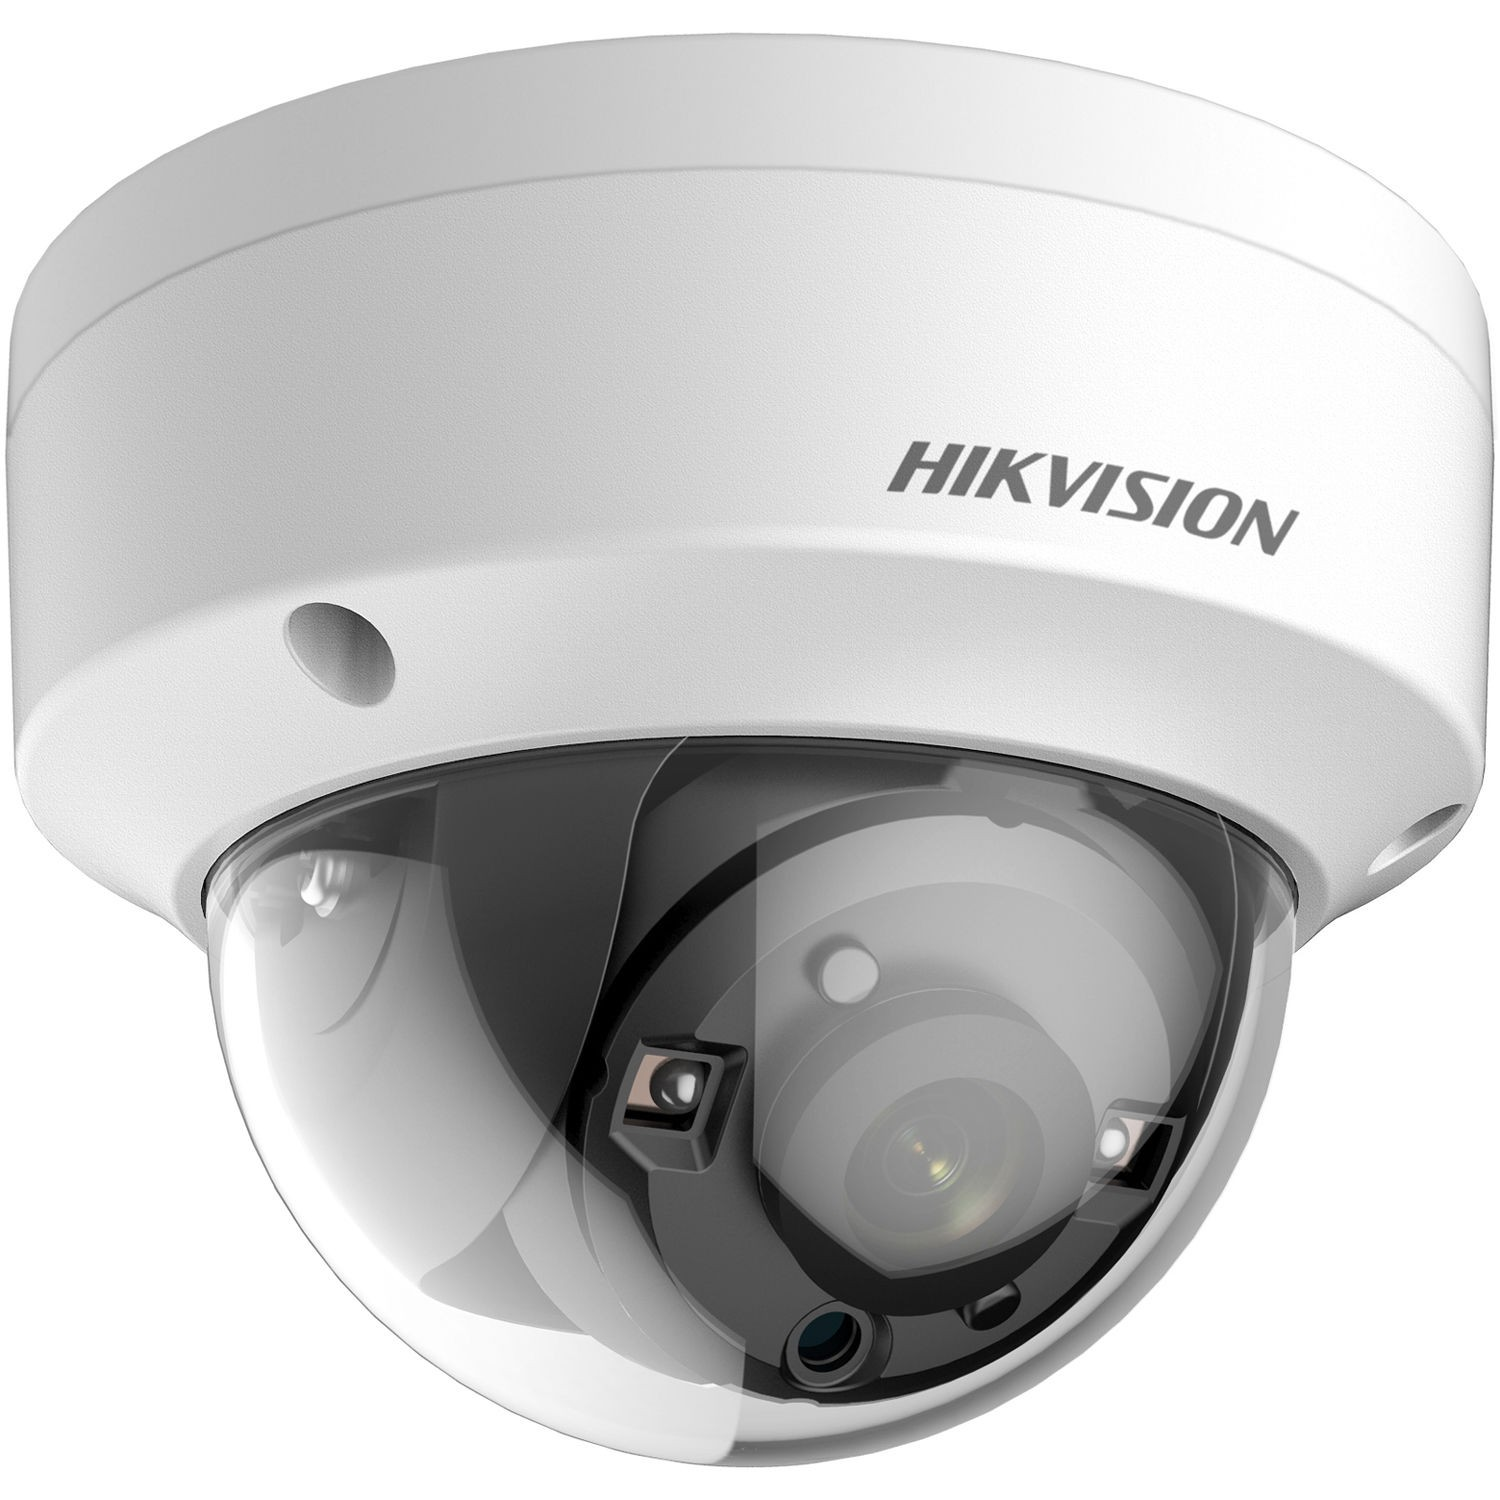 Hikvision DS-2CE57U8T-VPIT 4K UHD 8MP Ultra-Low Light 40M IR TVI Dome CCTV Security Camera